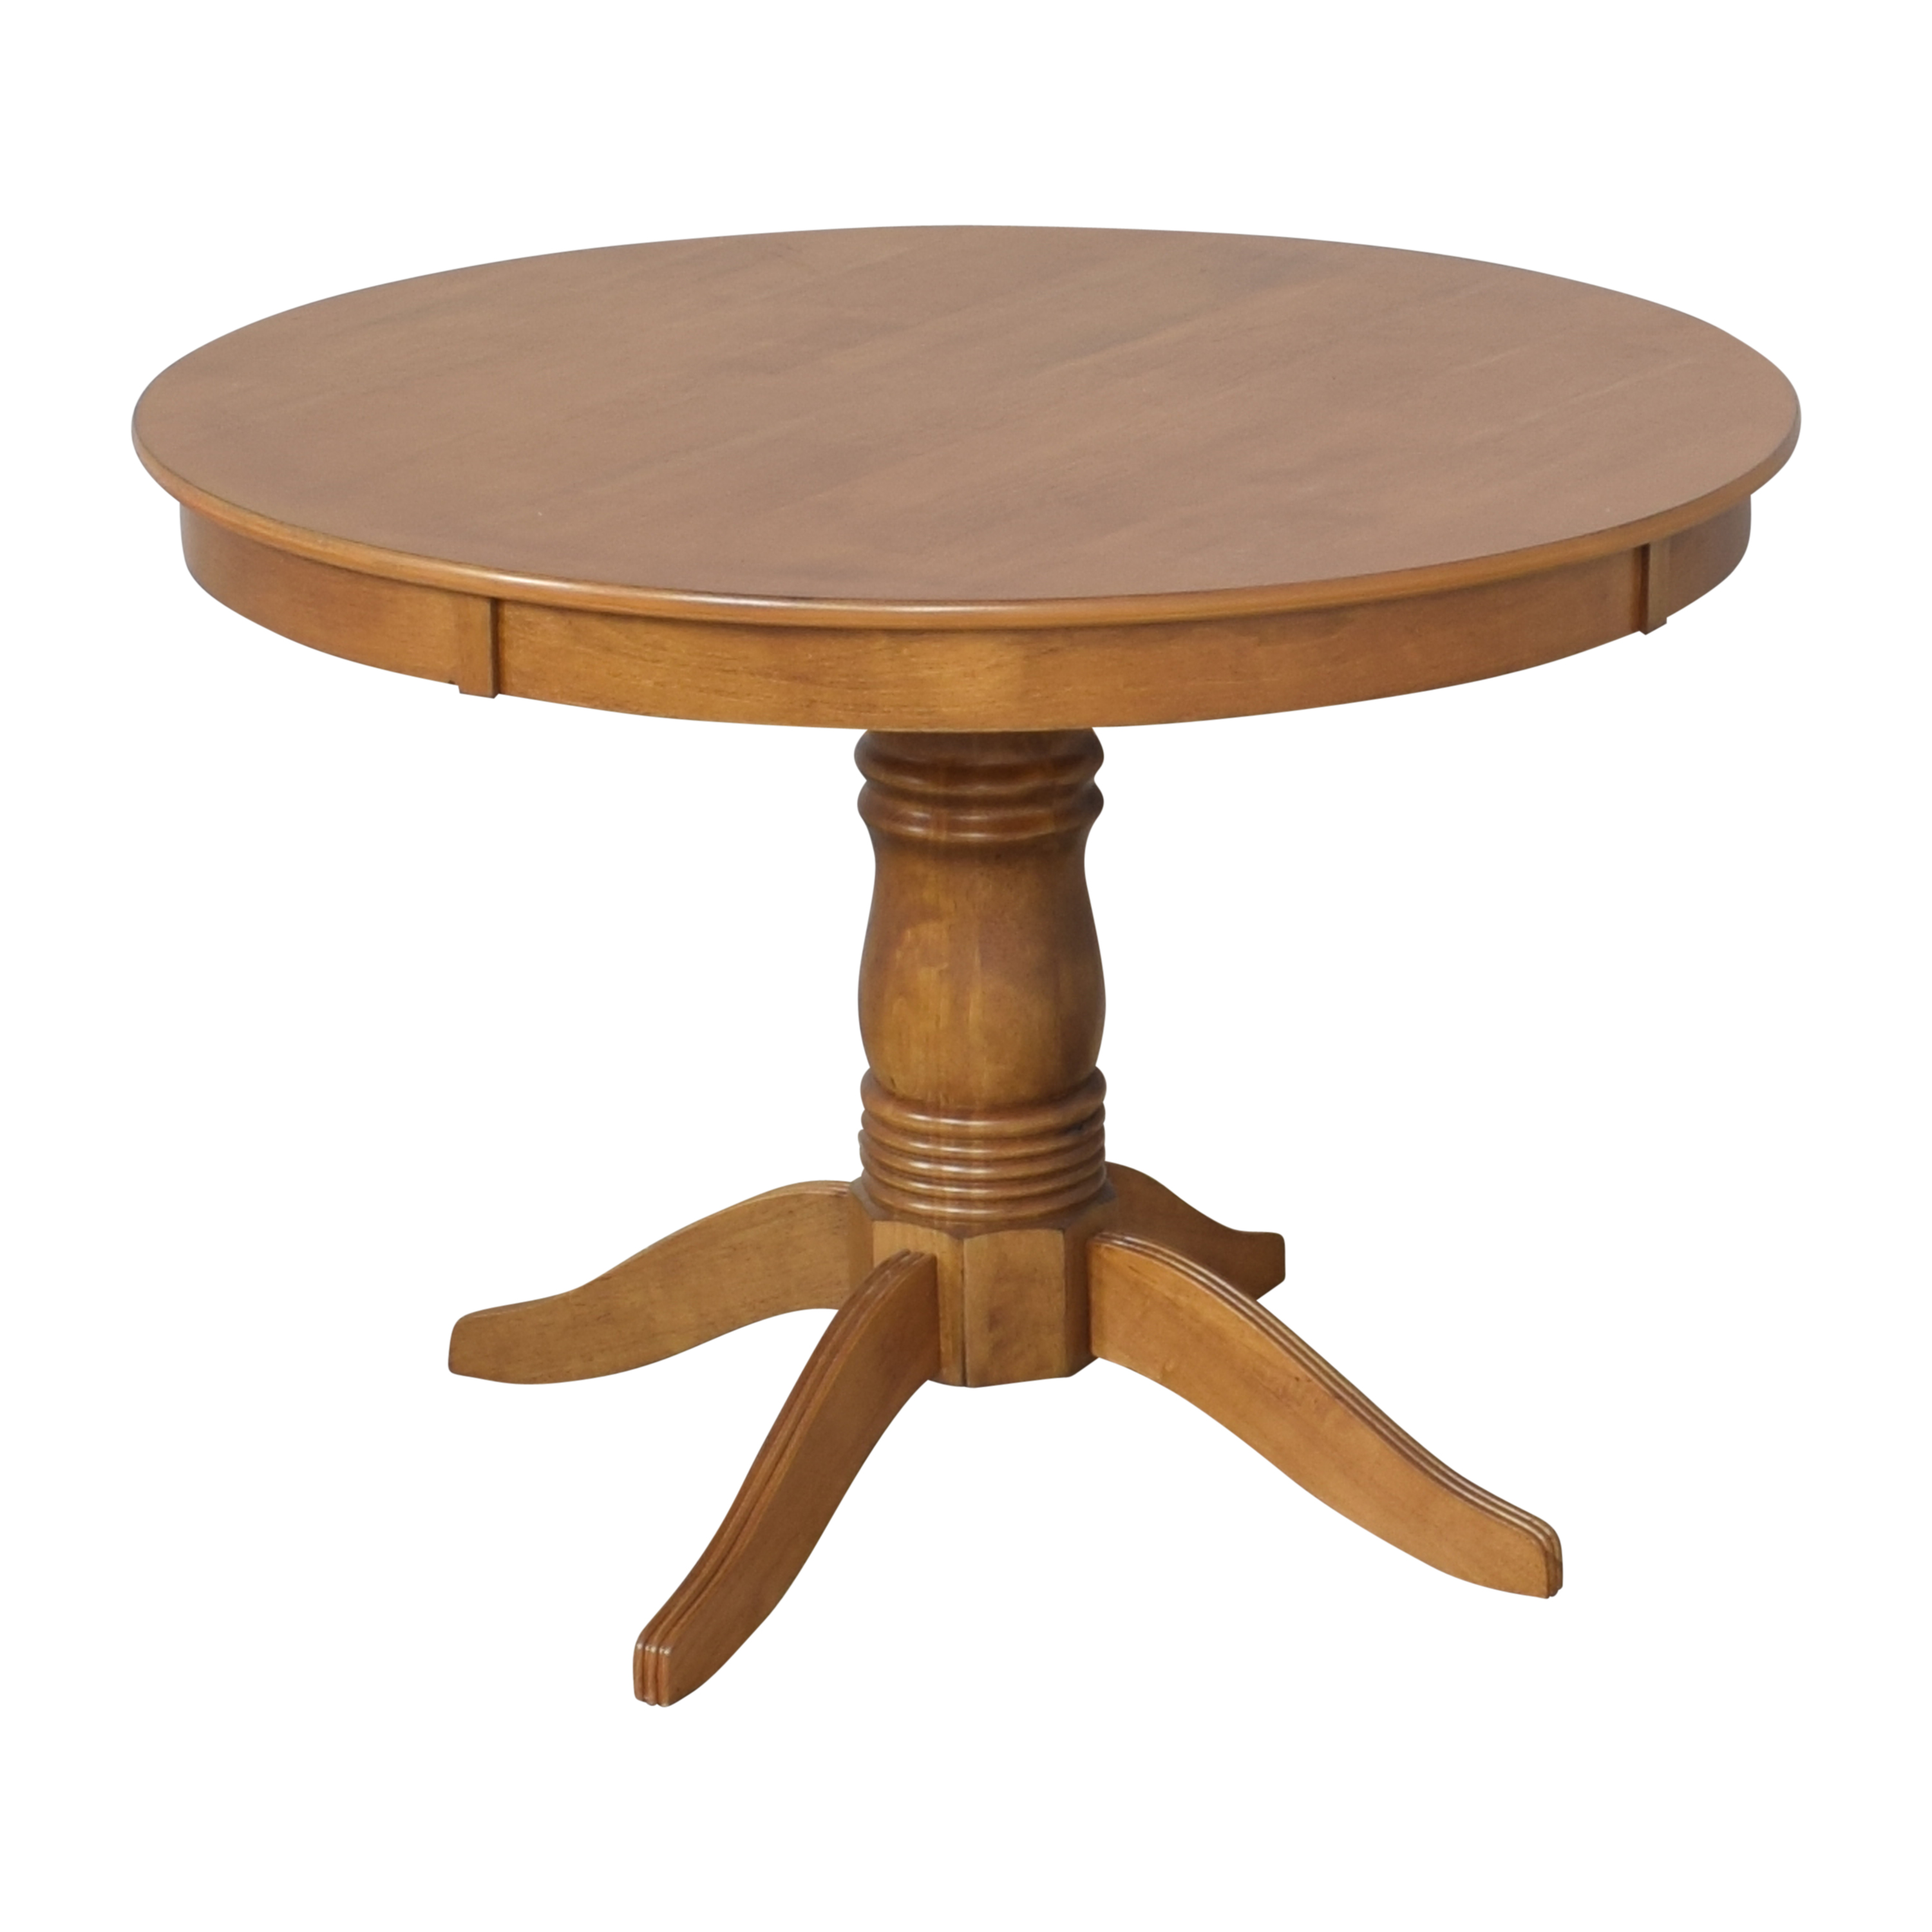 Round Pedestal Dining Table for sale